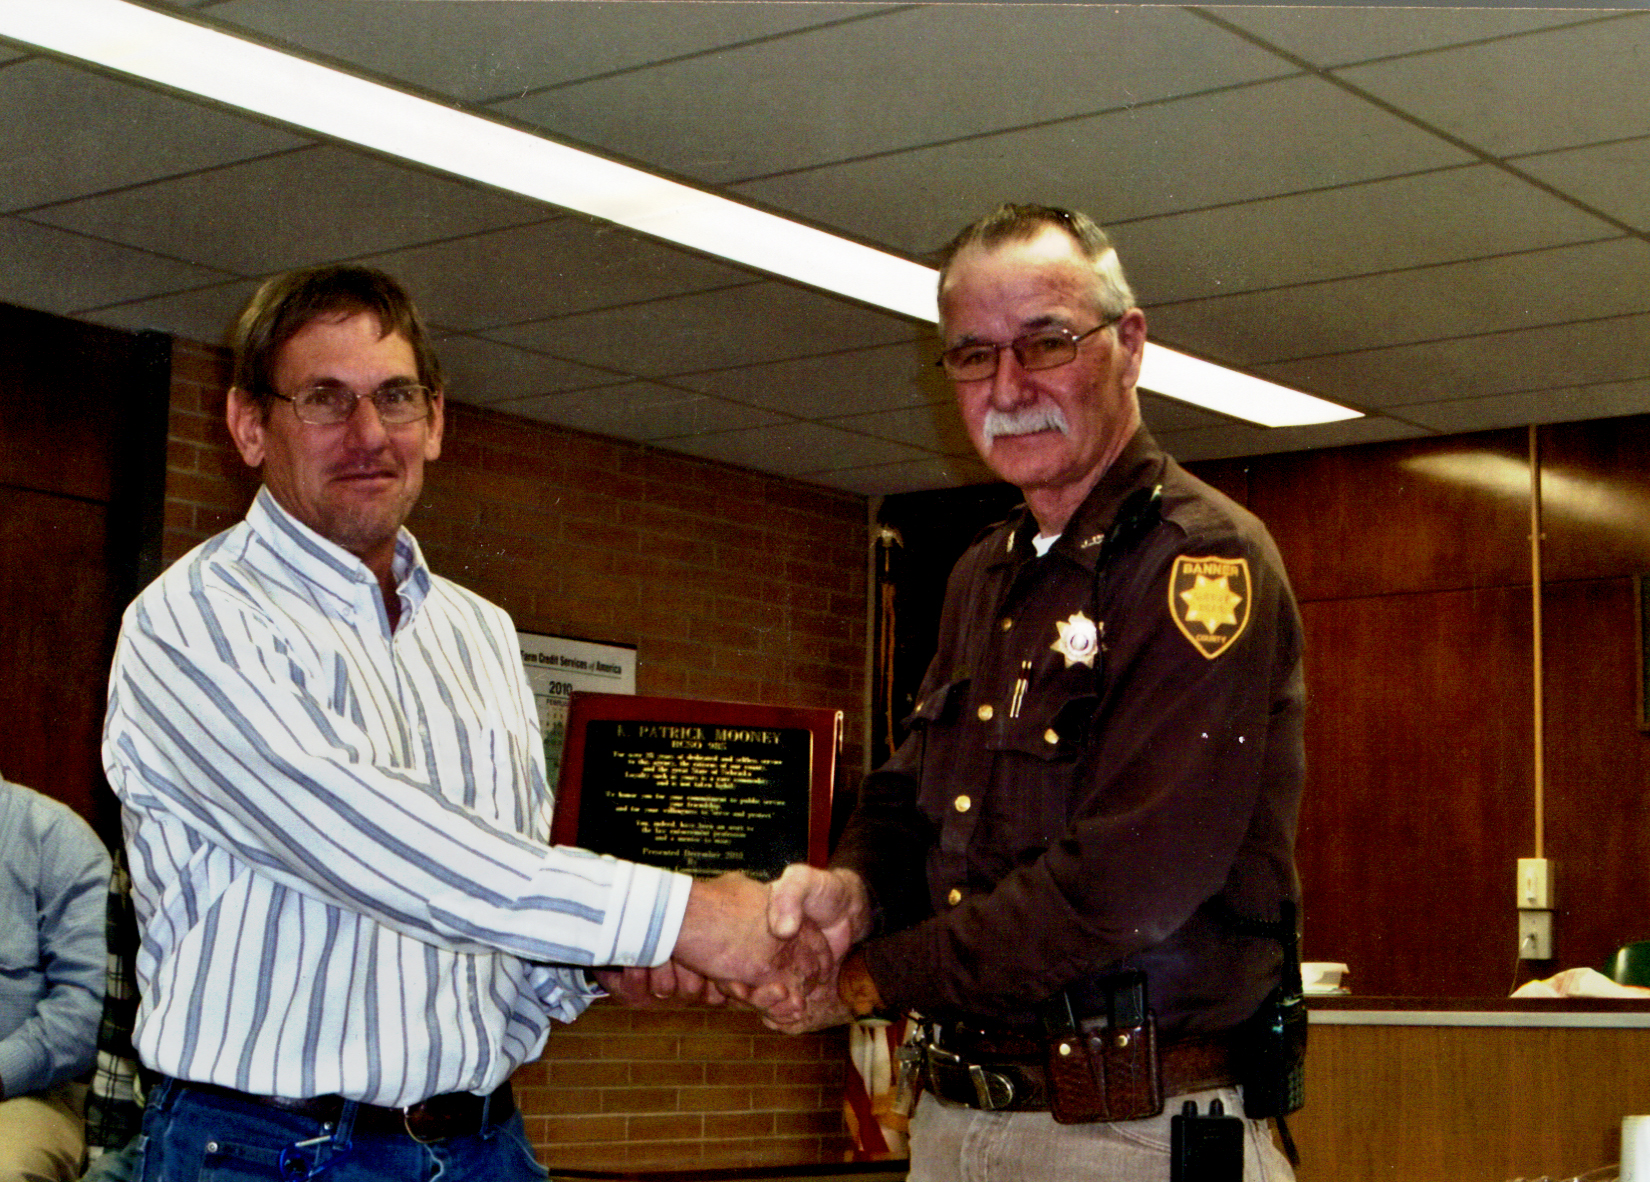 Bob Gifford Honors Sheriff Pat Mooney for 28 Years of Service